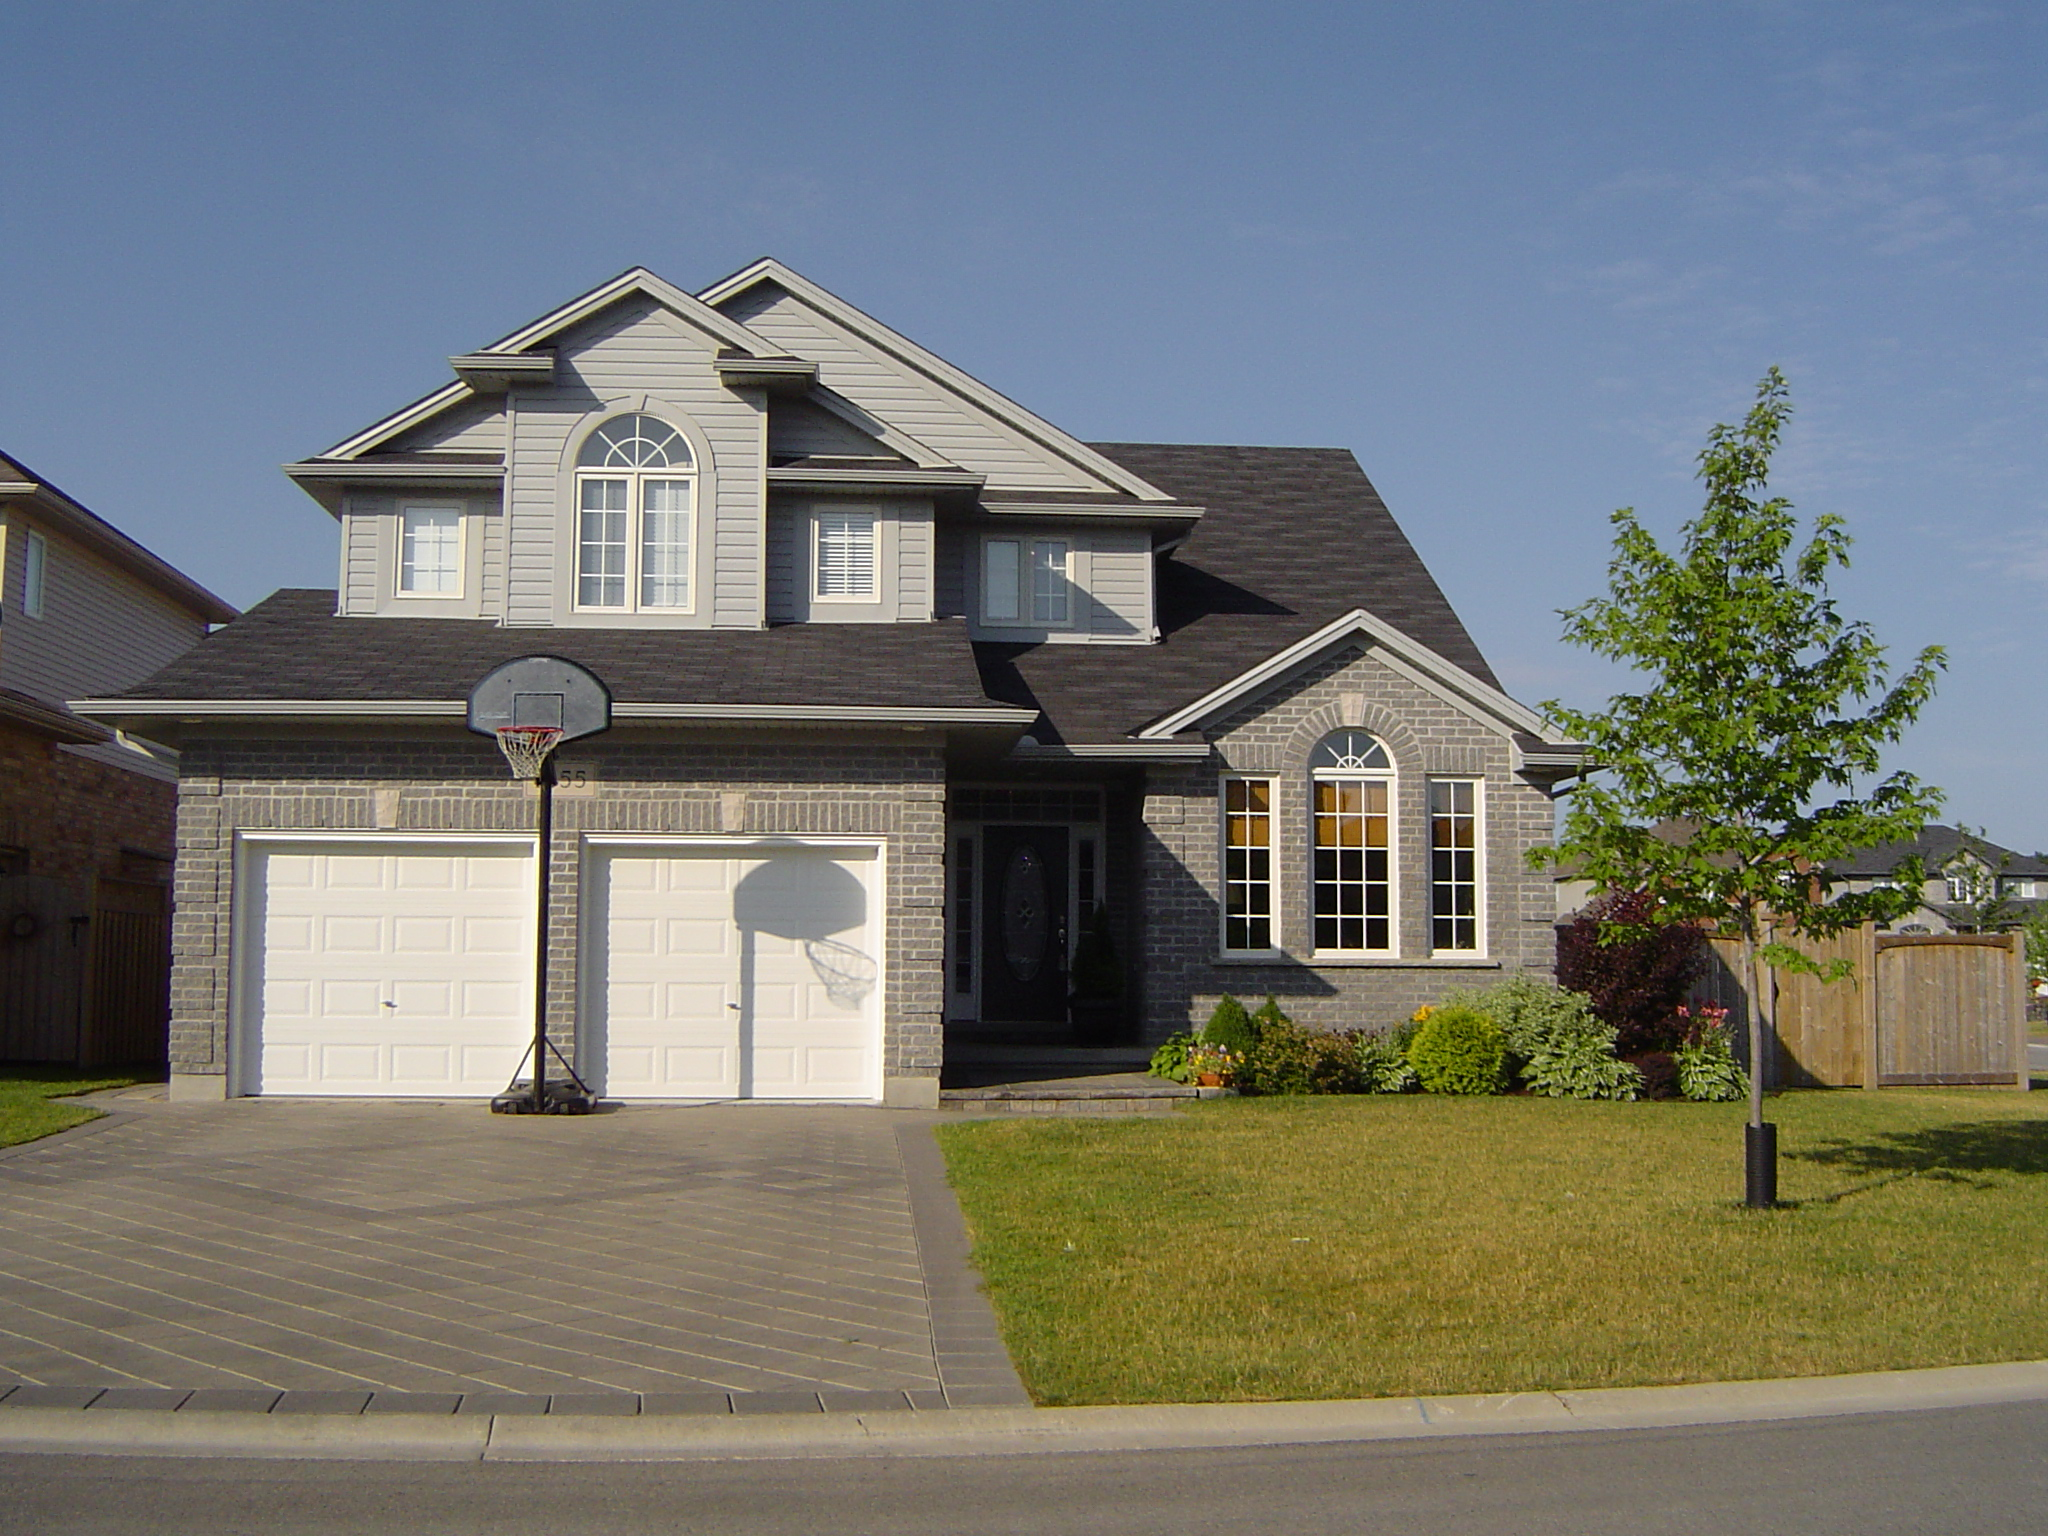 Mapleton Built 2 Storey Berkley ModelMapleton Built 2 Storey Berkley Model